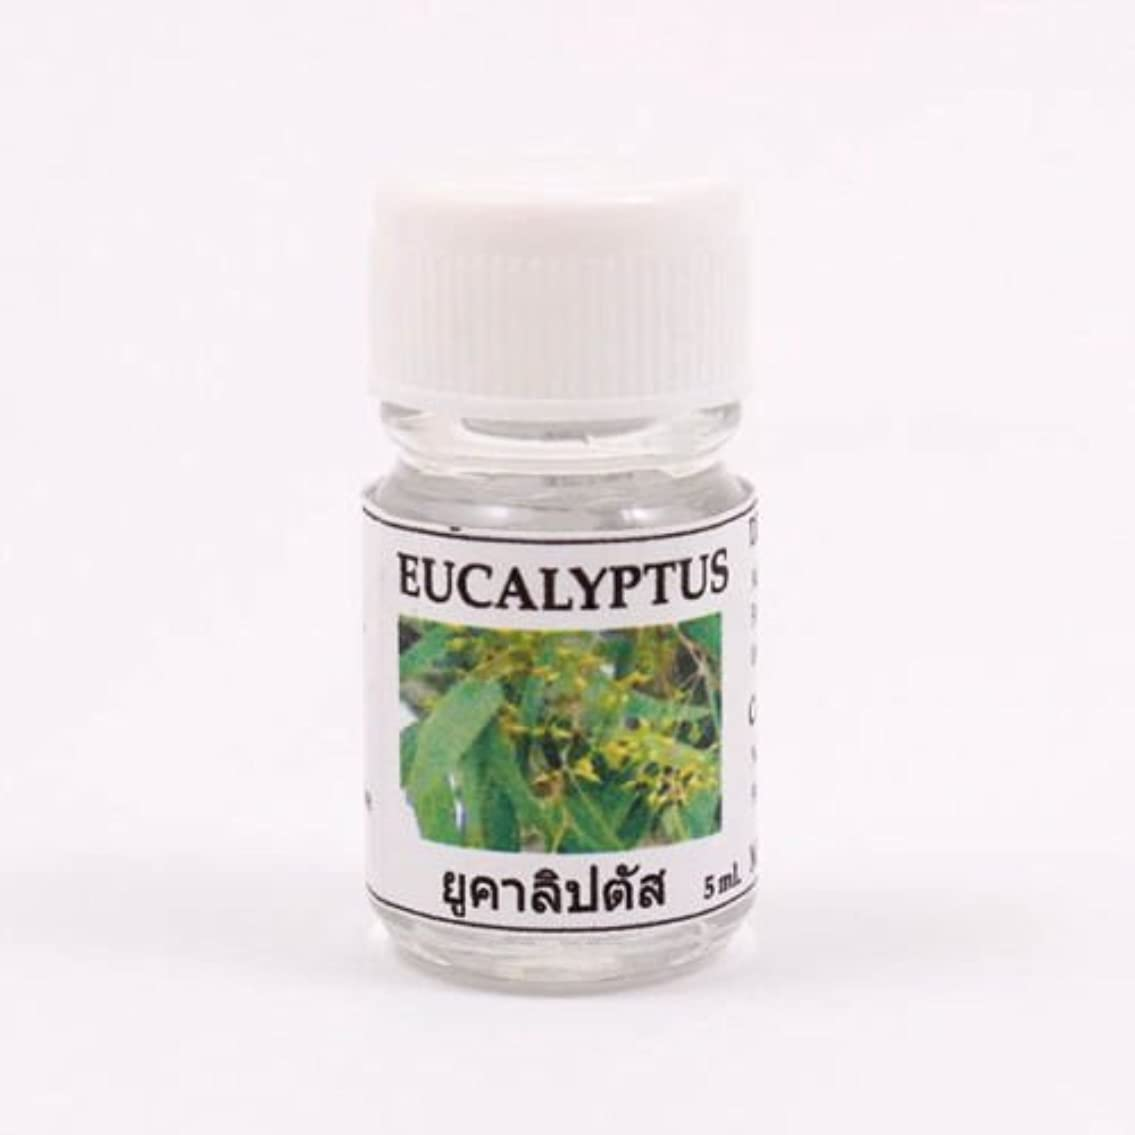 技術者差し控えるの慈悲で6X Eucalyptus Aroma Fragrance Essential Oil 5ML cc Diffuser Burner Therapy